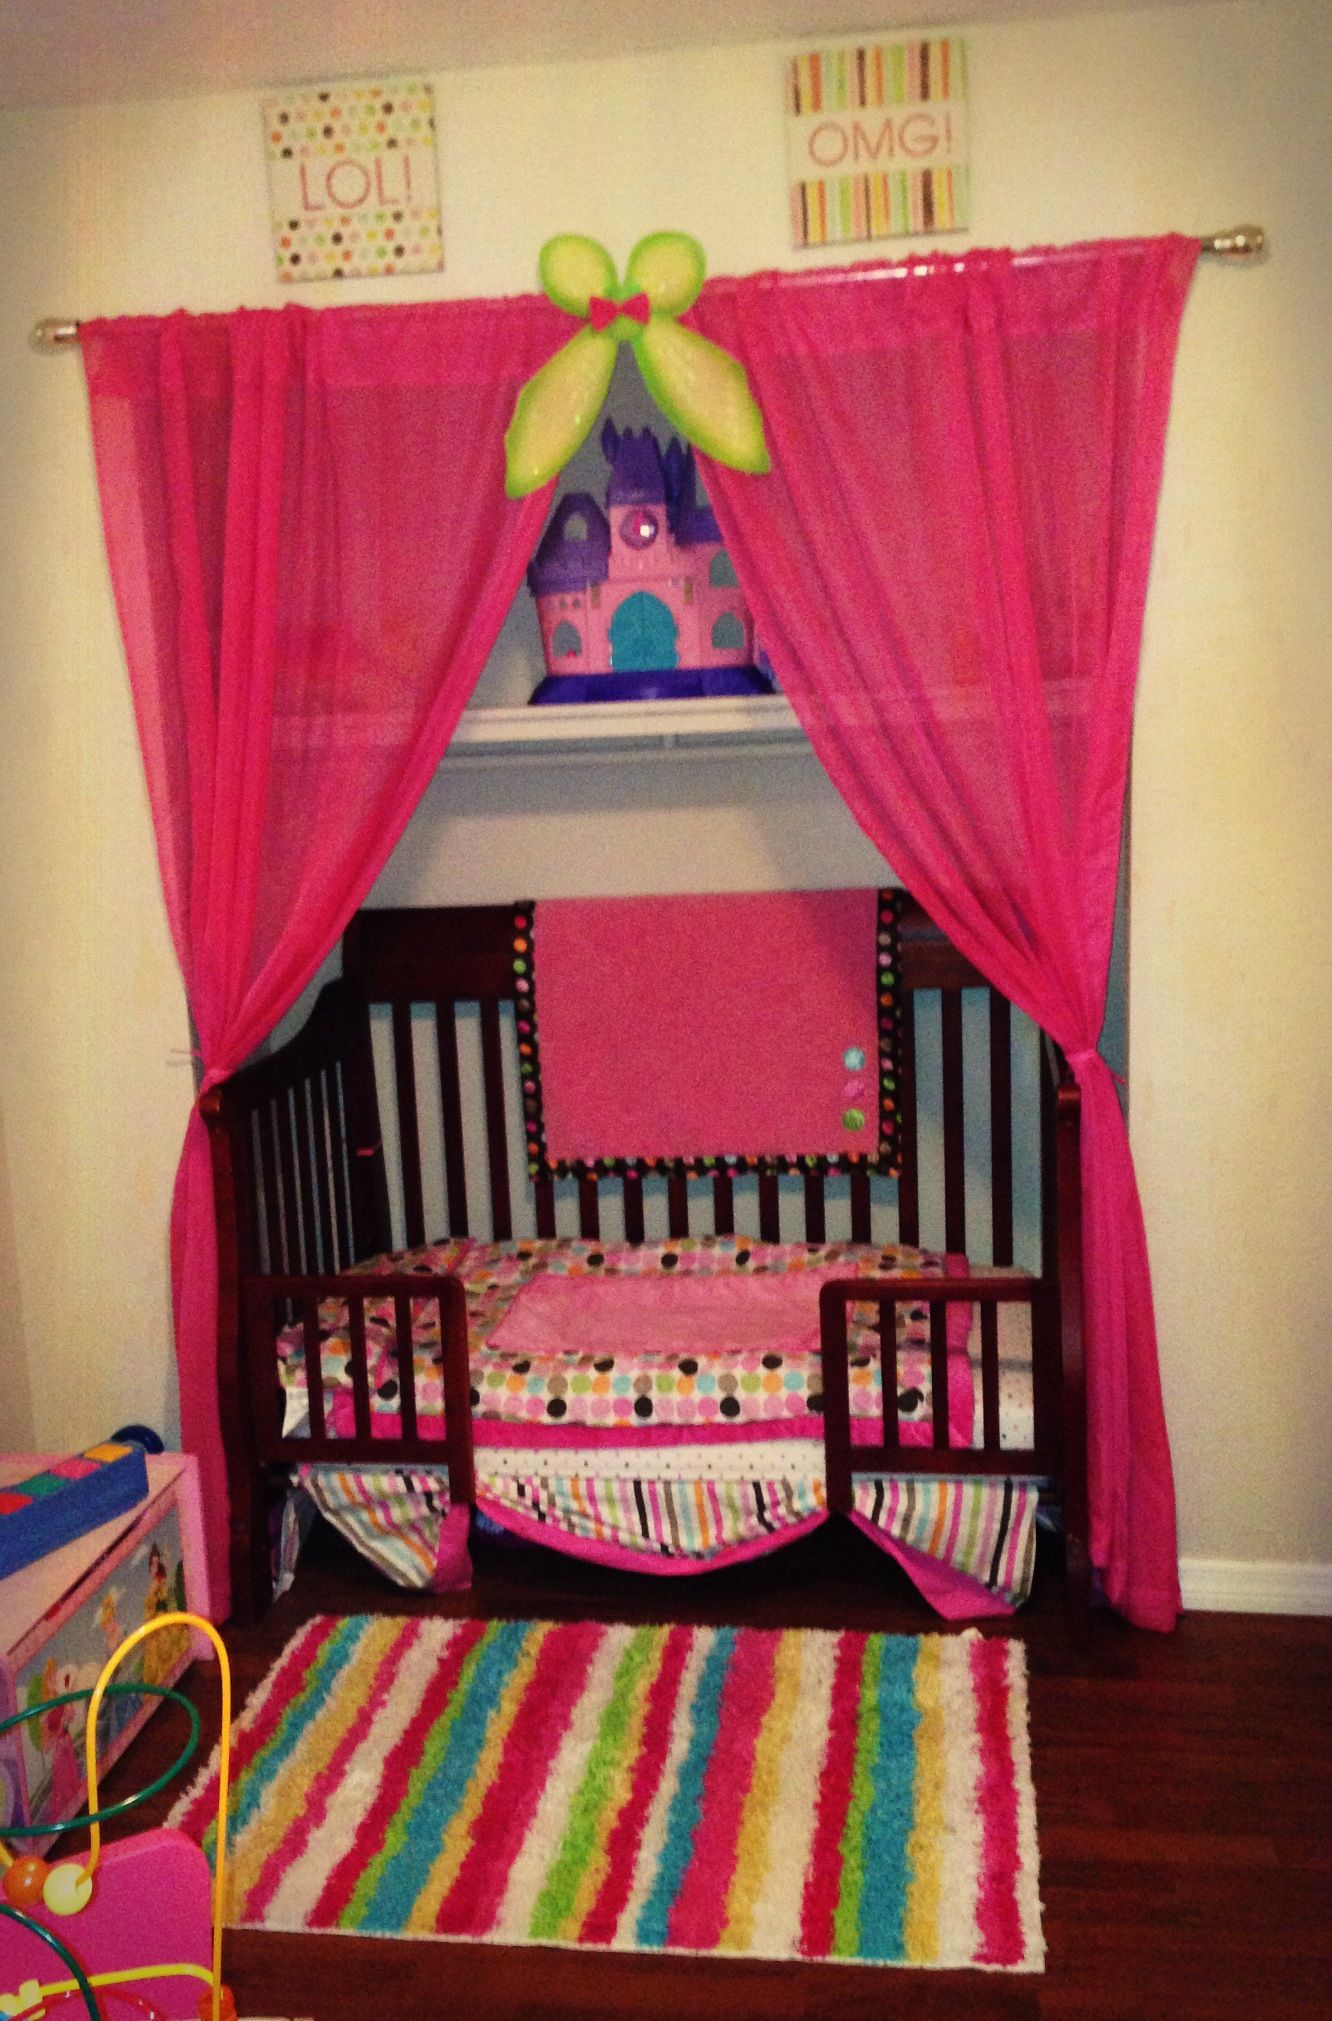 Themed Toddler Beds Toddler Bed In Closet For The Home Toddler Room Decor Diy